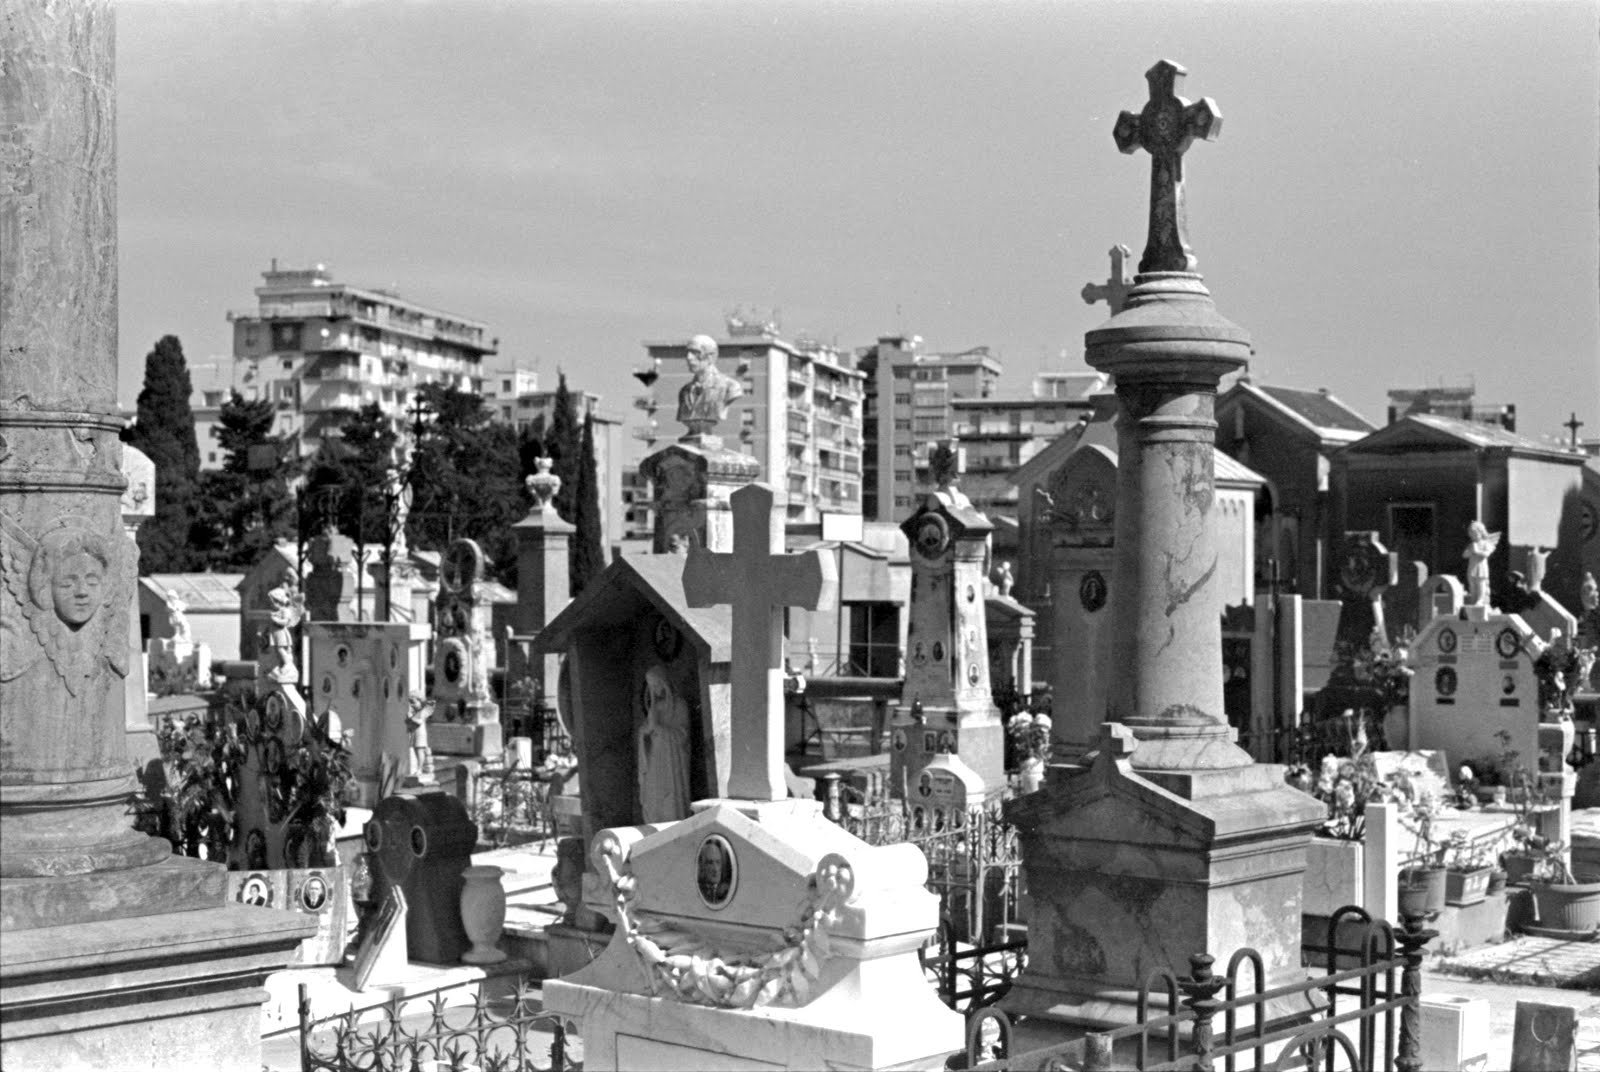 City of the Dead, Palermo, 2019.